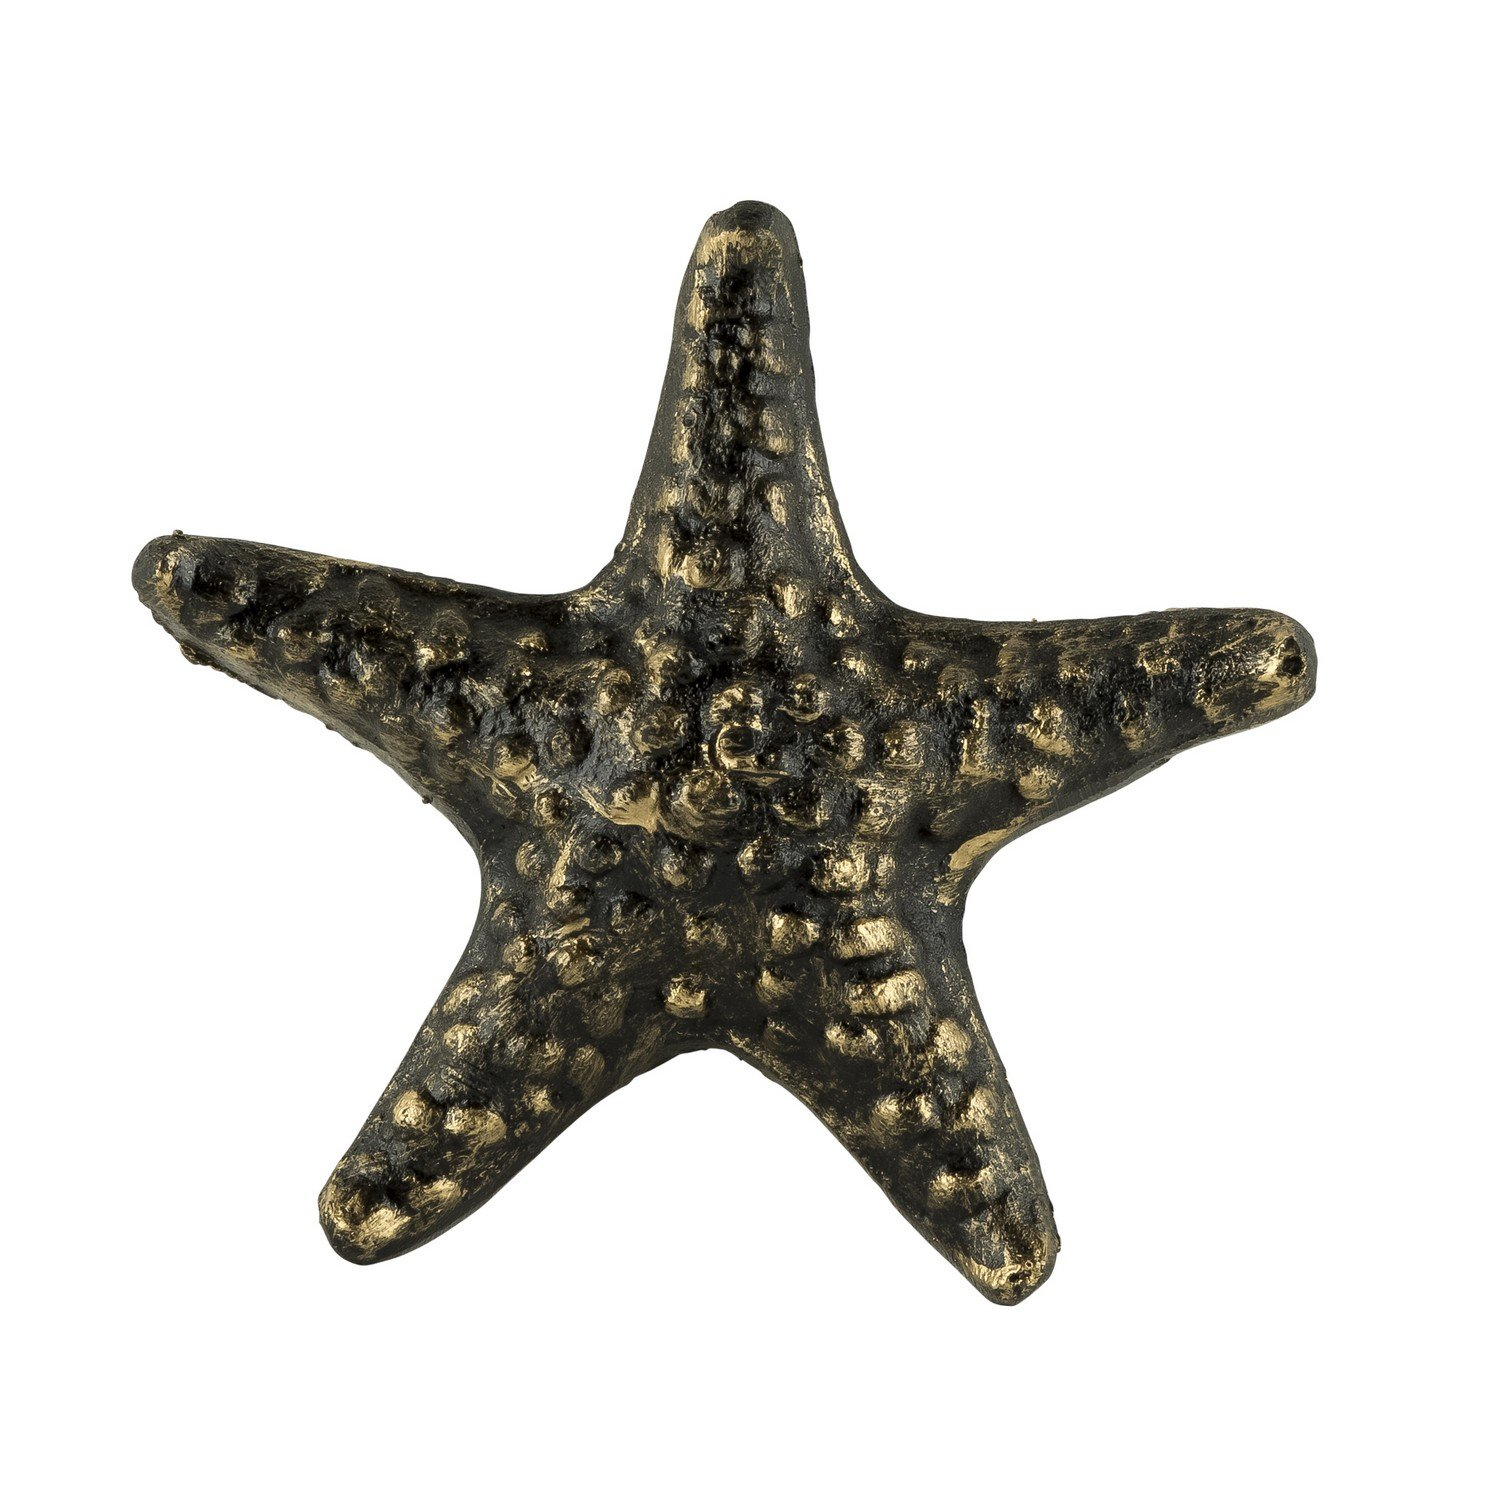 Beer Bottle Openers, Decorative Unique Rustic Cast Iron Starfish Beer Openers by Twine